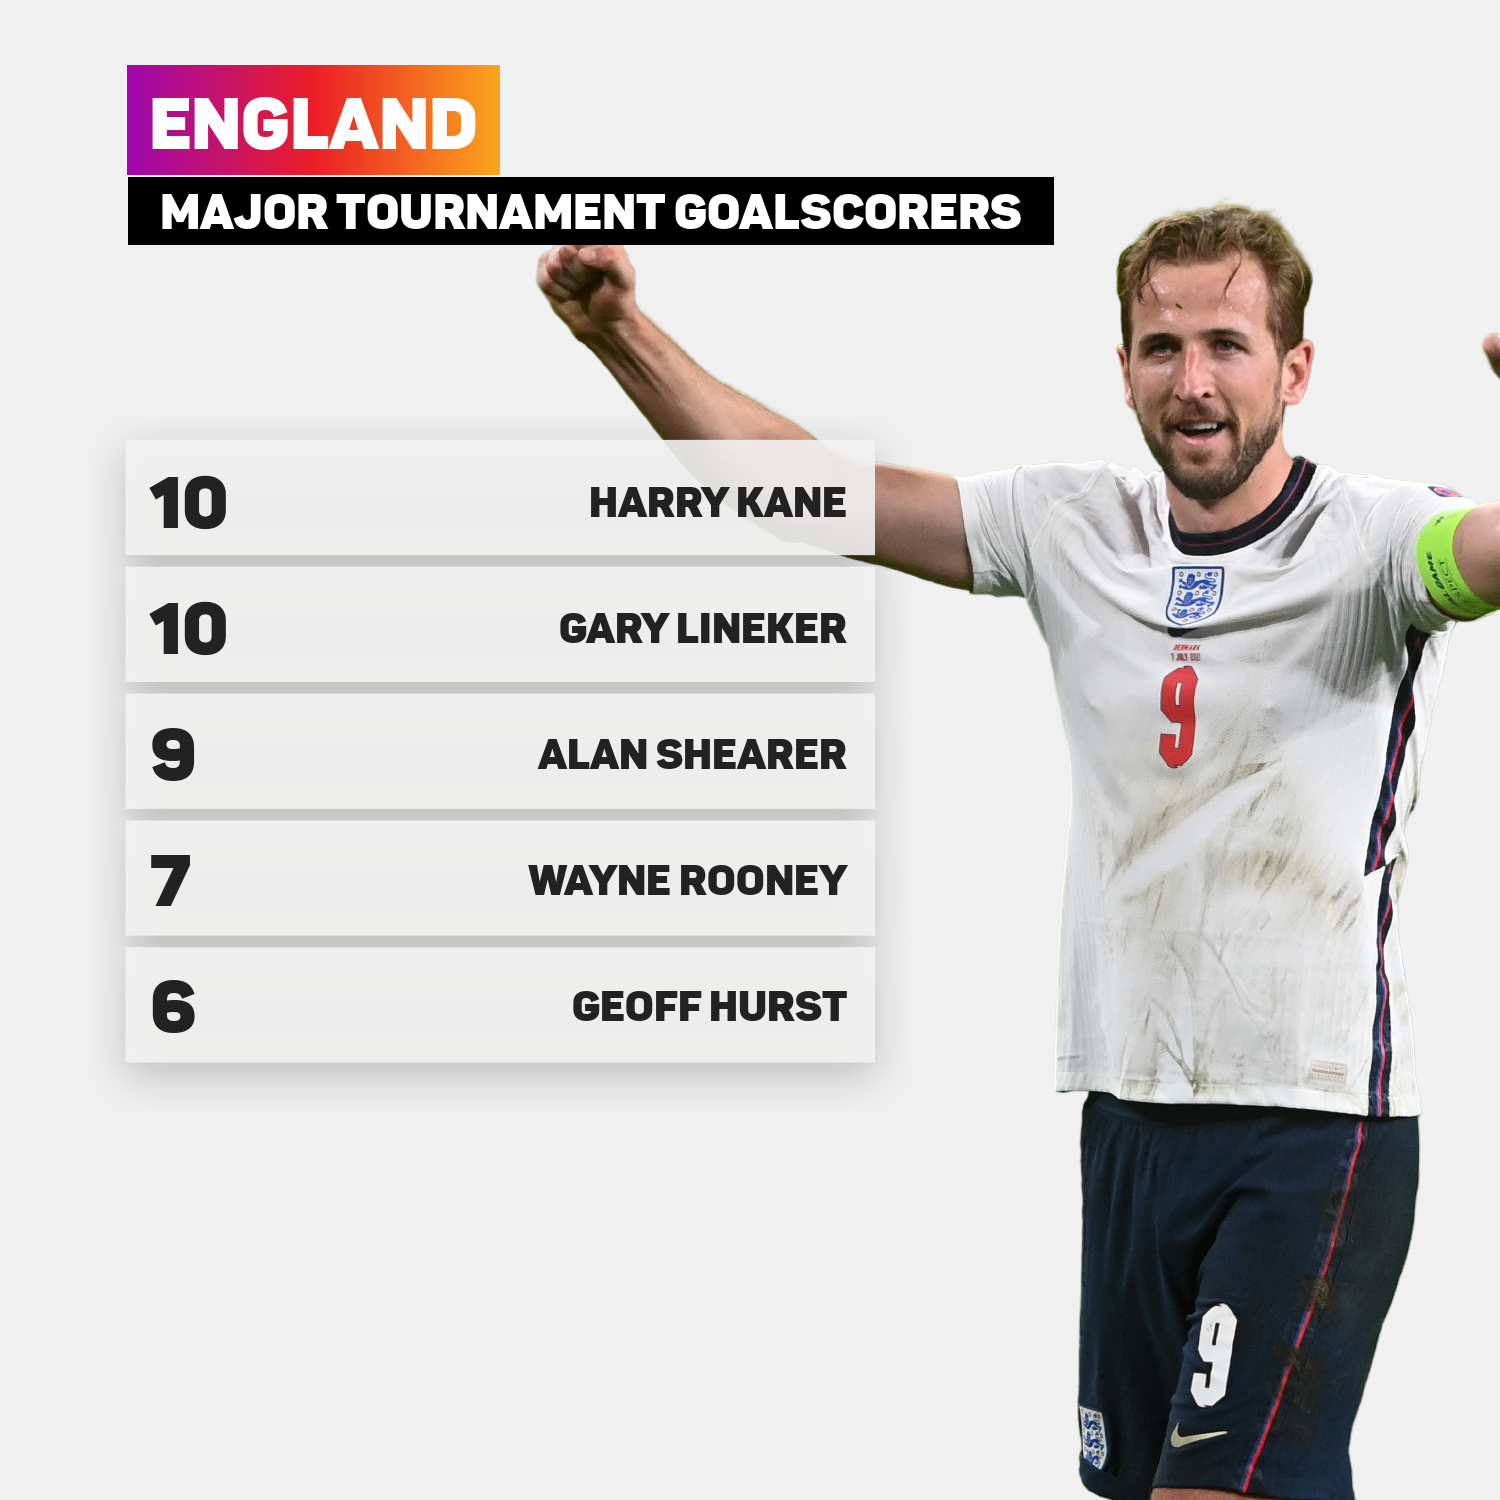 Harry Kane and Gary Lineker lead the way for England